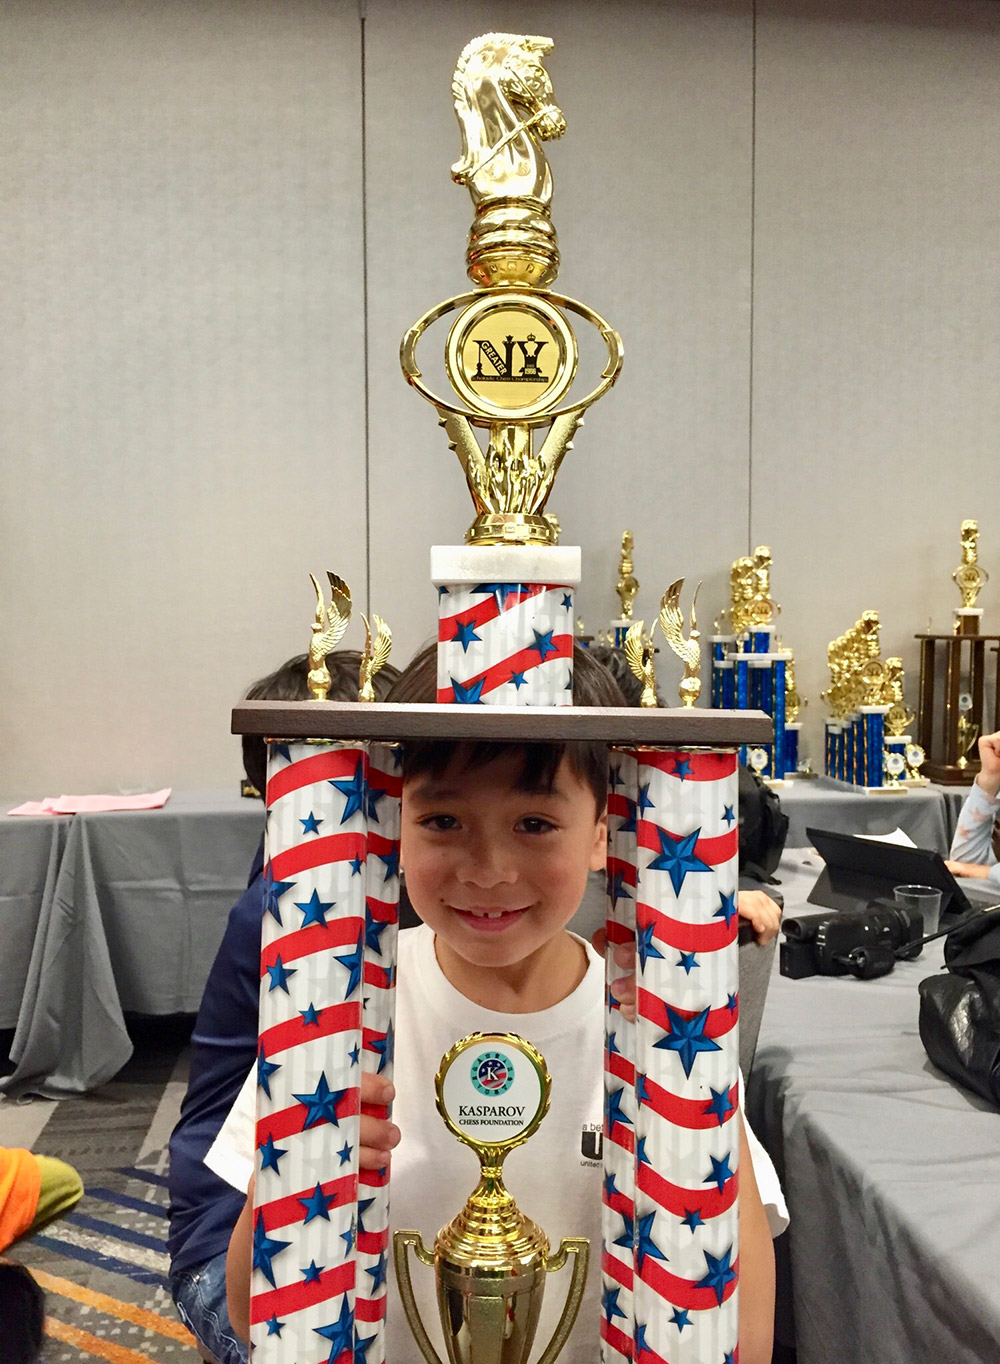 Oliver was crowned New York City Champion at the Kasparov Greater New York Scholastic Chess Championships. February, 2017